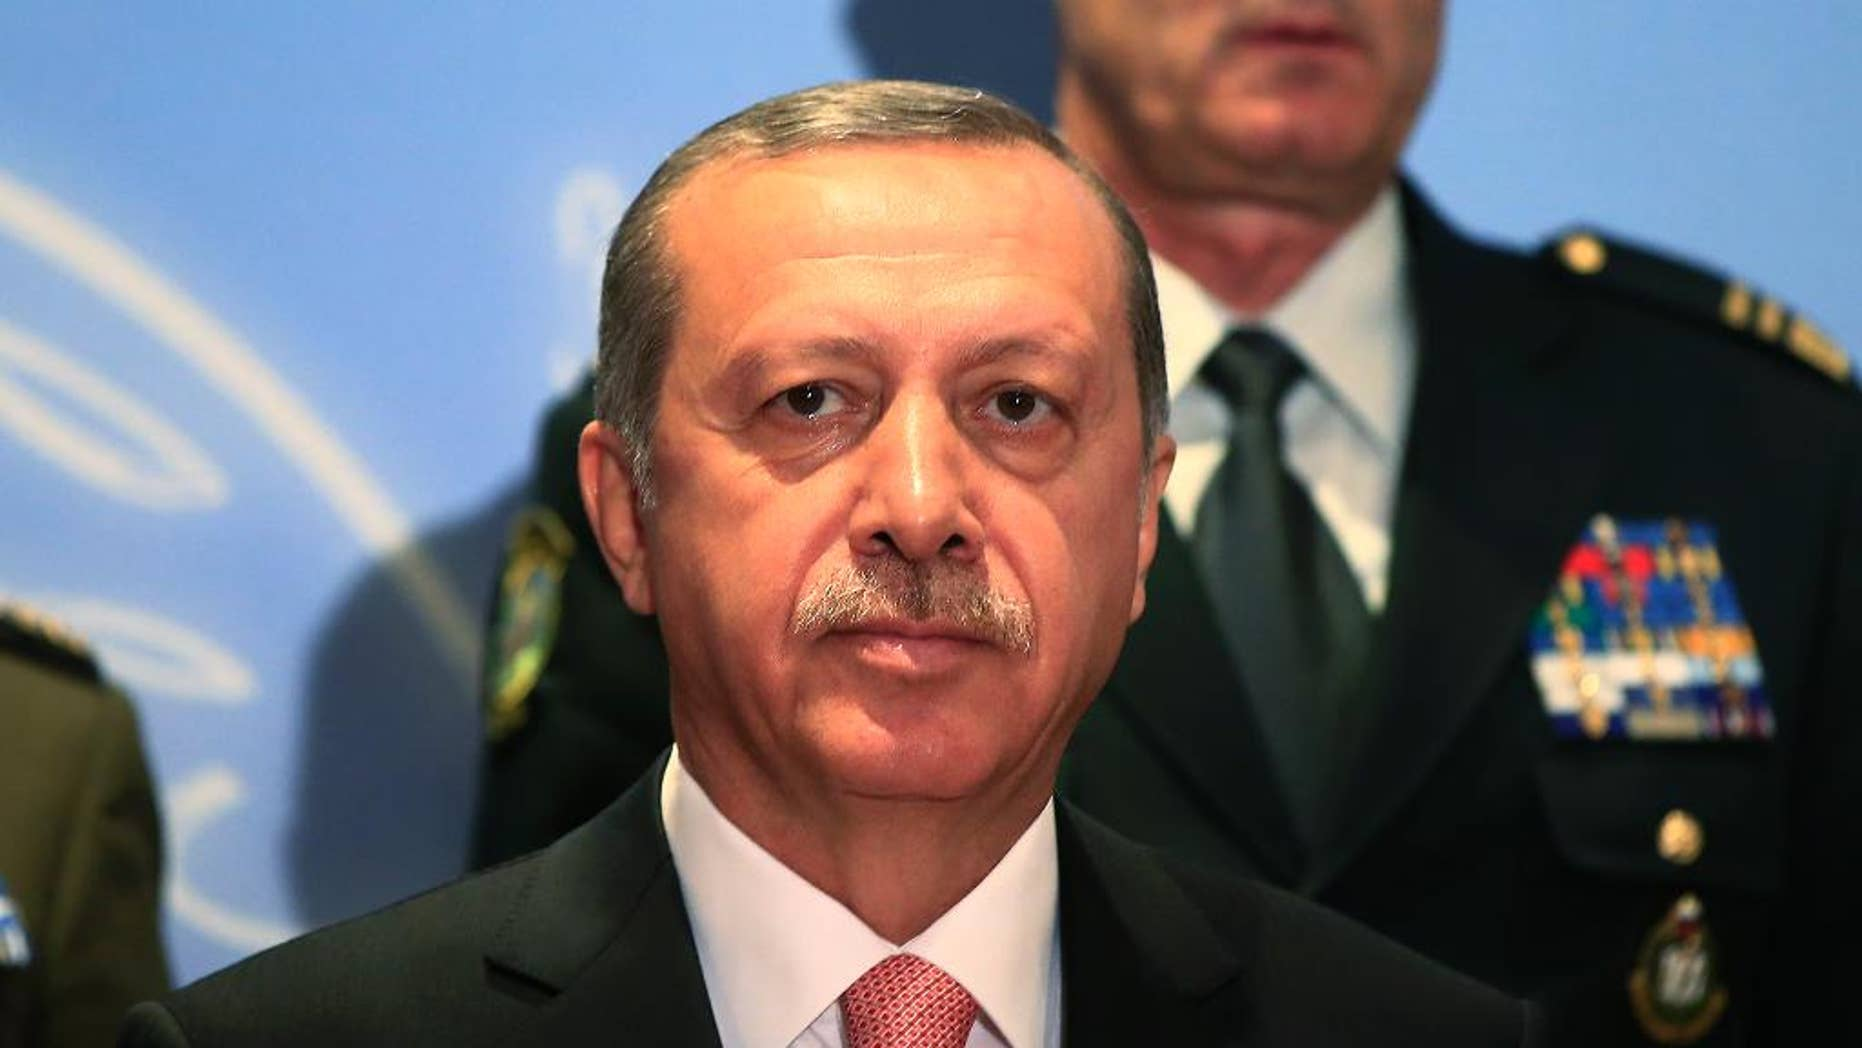 Turkey's President Recep Tayyip Erdogan, poses for photographs with military chiefs of Balkan nations following his speech at their conference, in Istanbul Wednesday, May 11, 2016. Erdogan said Turkish forces have killed some 3,000 Islamic State militants in Syria and Iraq, insisting that no other country has matched Turkey's efforts against the extremist group. At the same meeting earlier however, the Turkish military chief, put the number of IS militants killed Syria and Iraq at 1,300. (AP Photo/Lefteris Pitarakis)